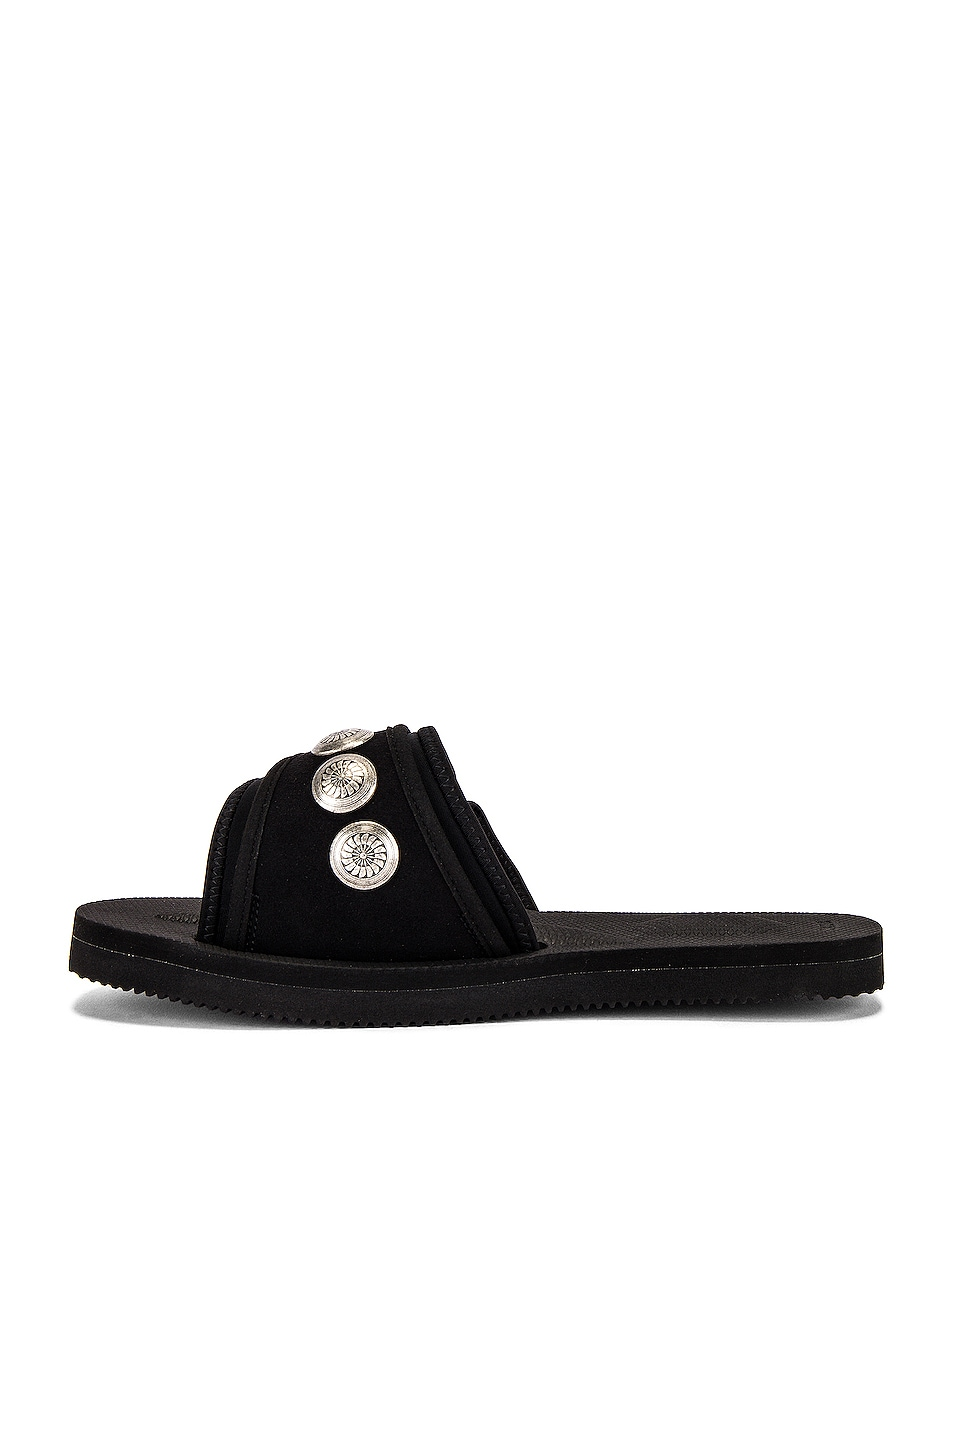 Image 5 of JOHN ELLIOTT x Blackmeans x Suicoke Lotus Slide in Black